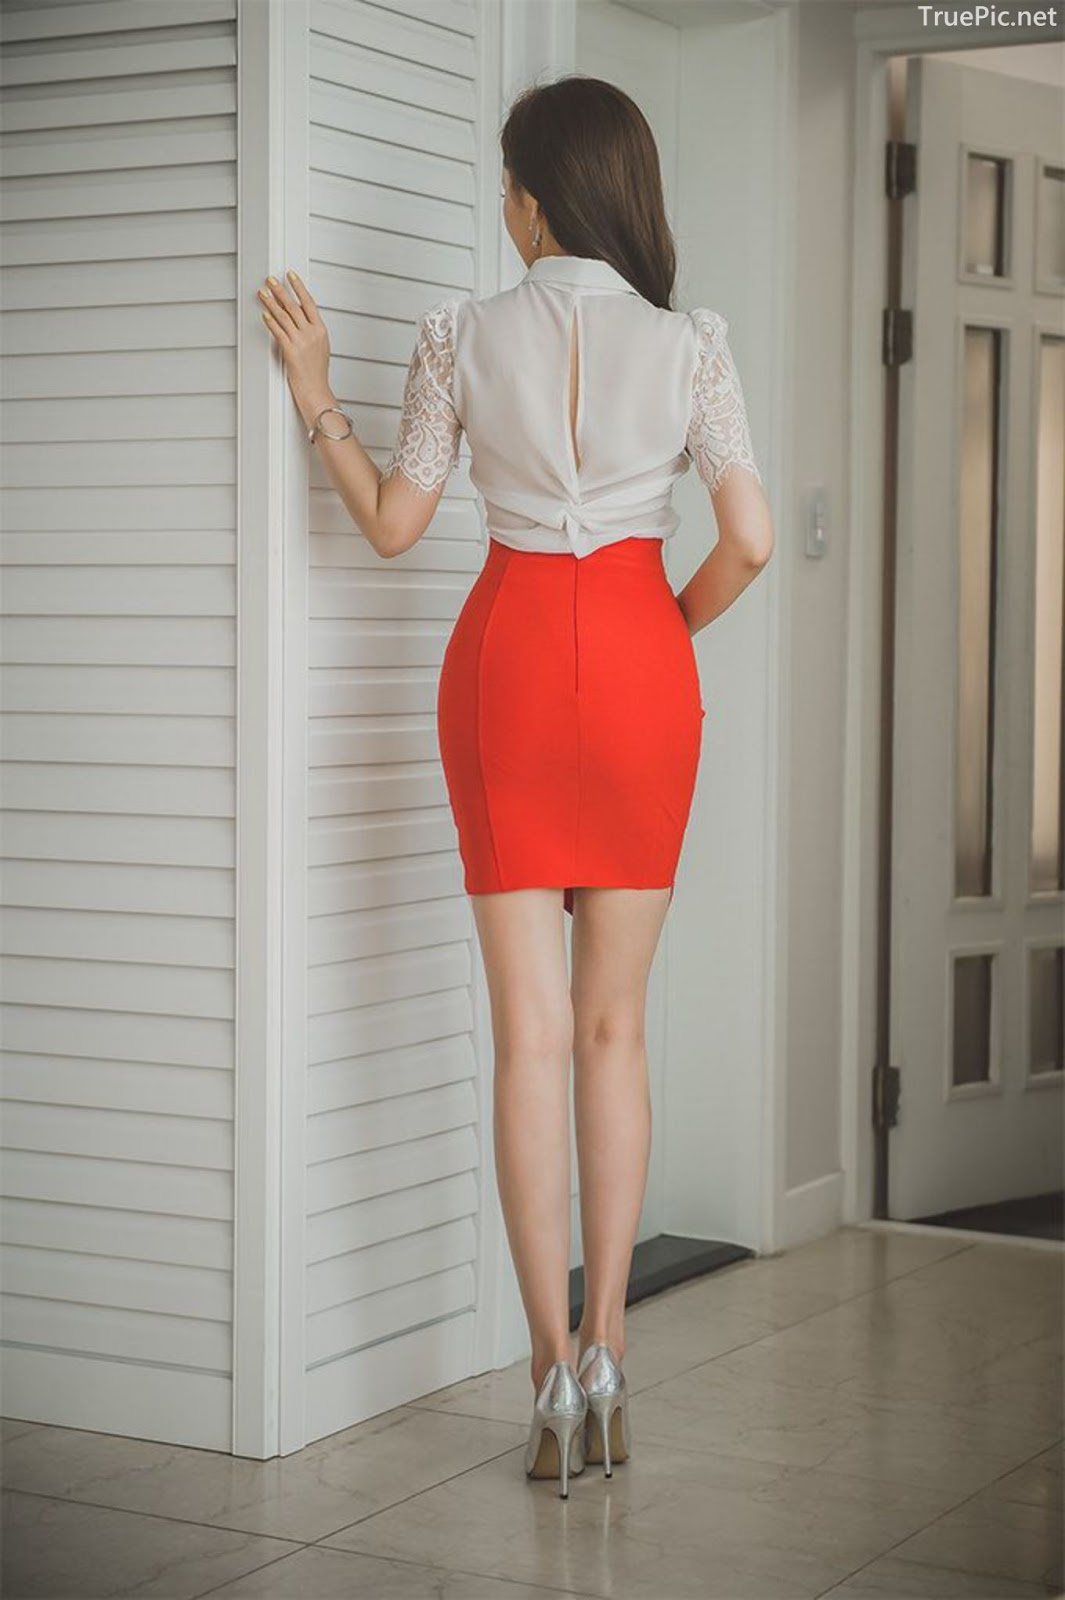 Lee Yeon Jeong - Indoor Photoshoot Collection - Korean fashion model - Part 5 - Picture 6